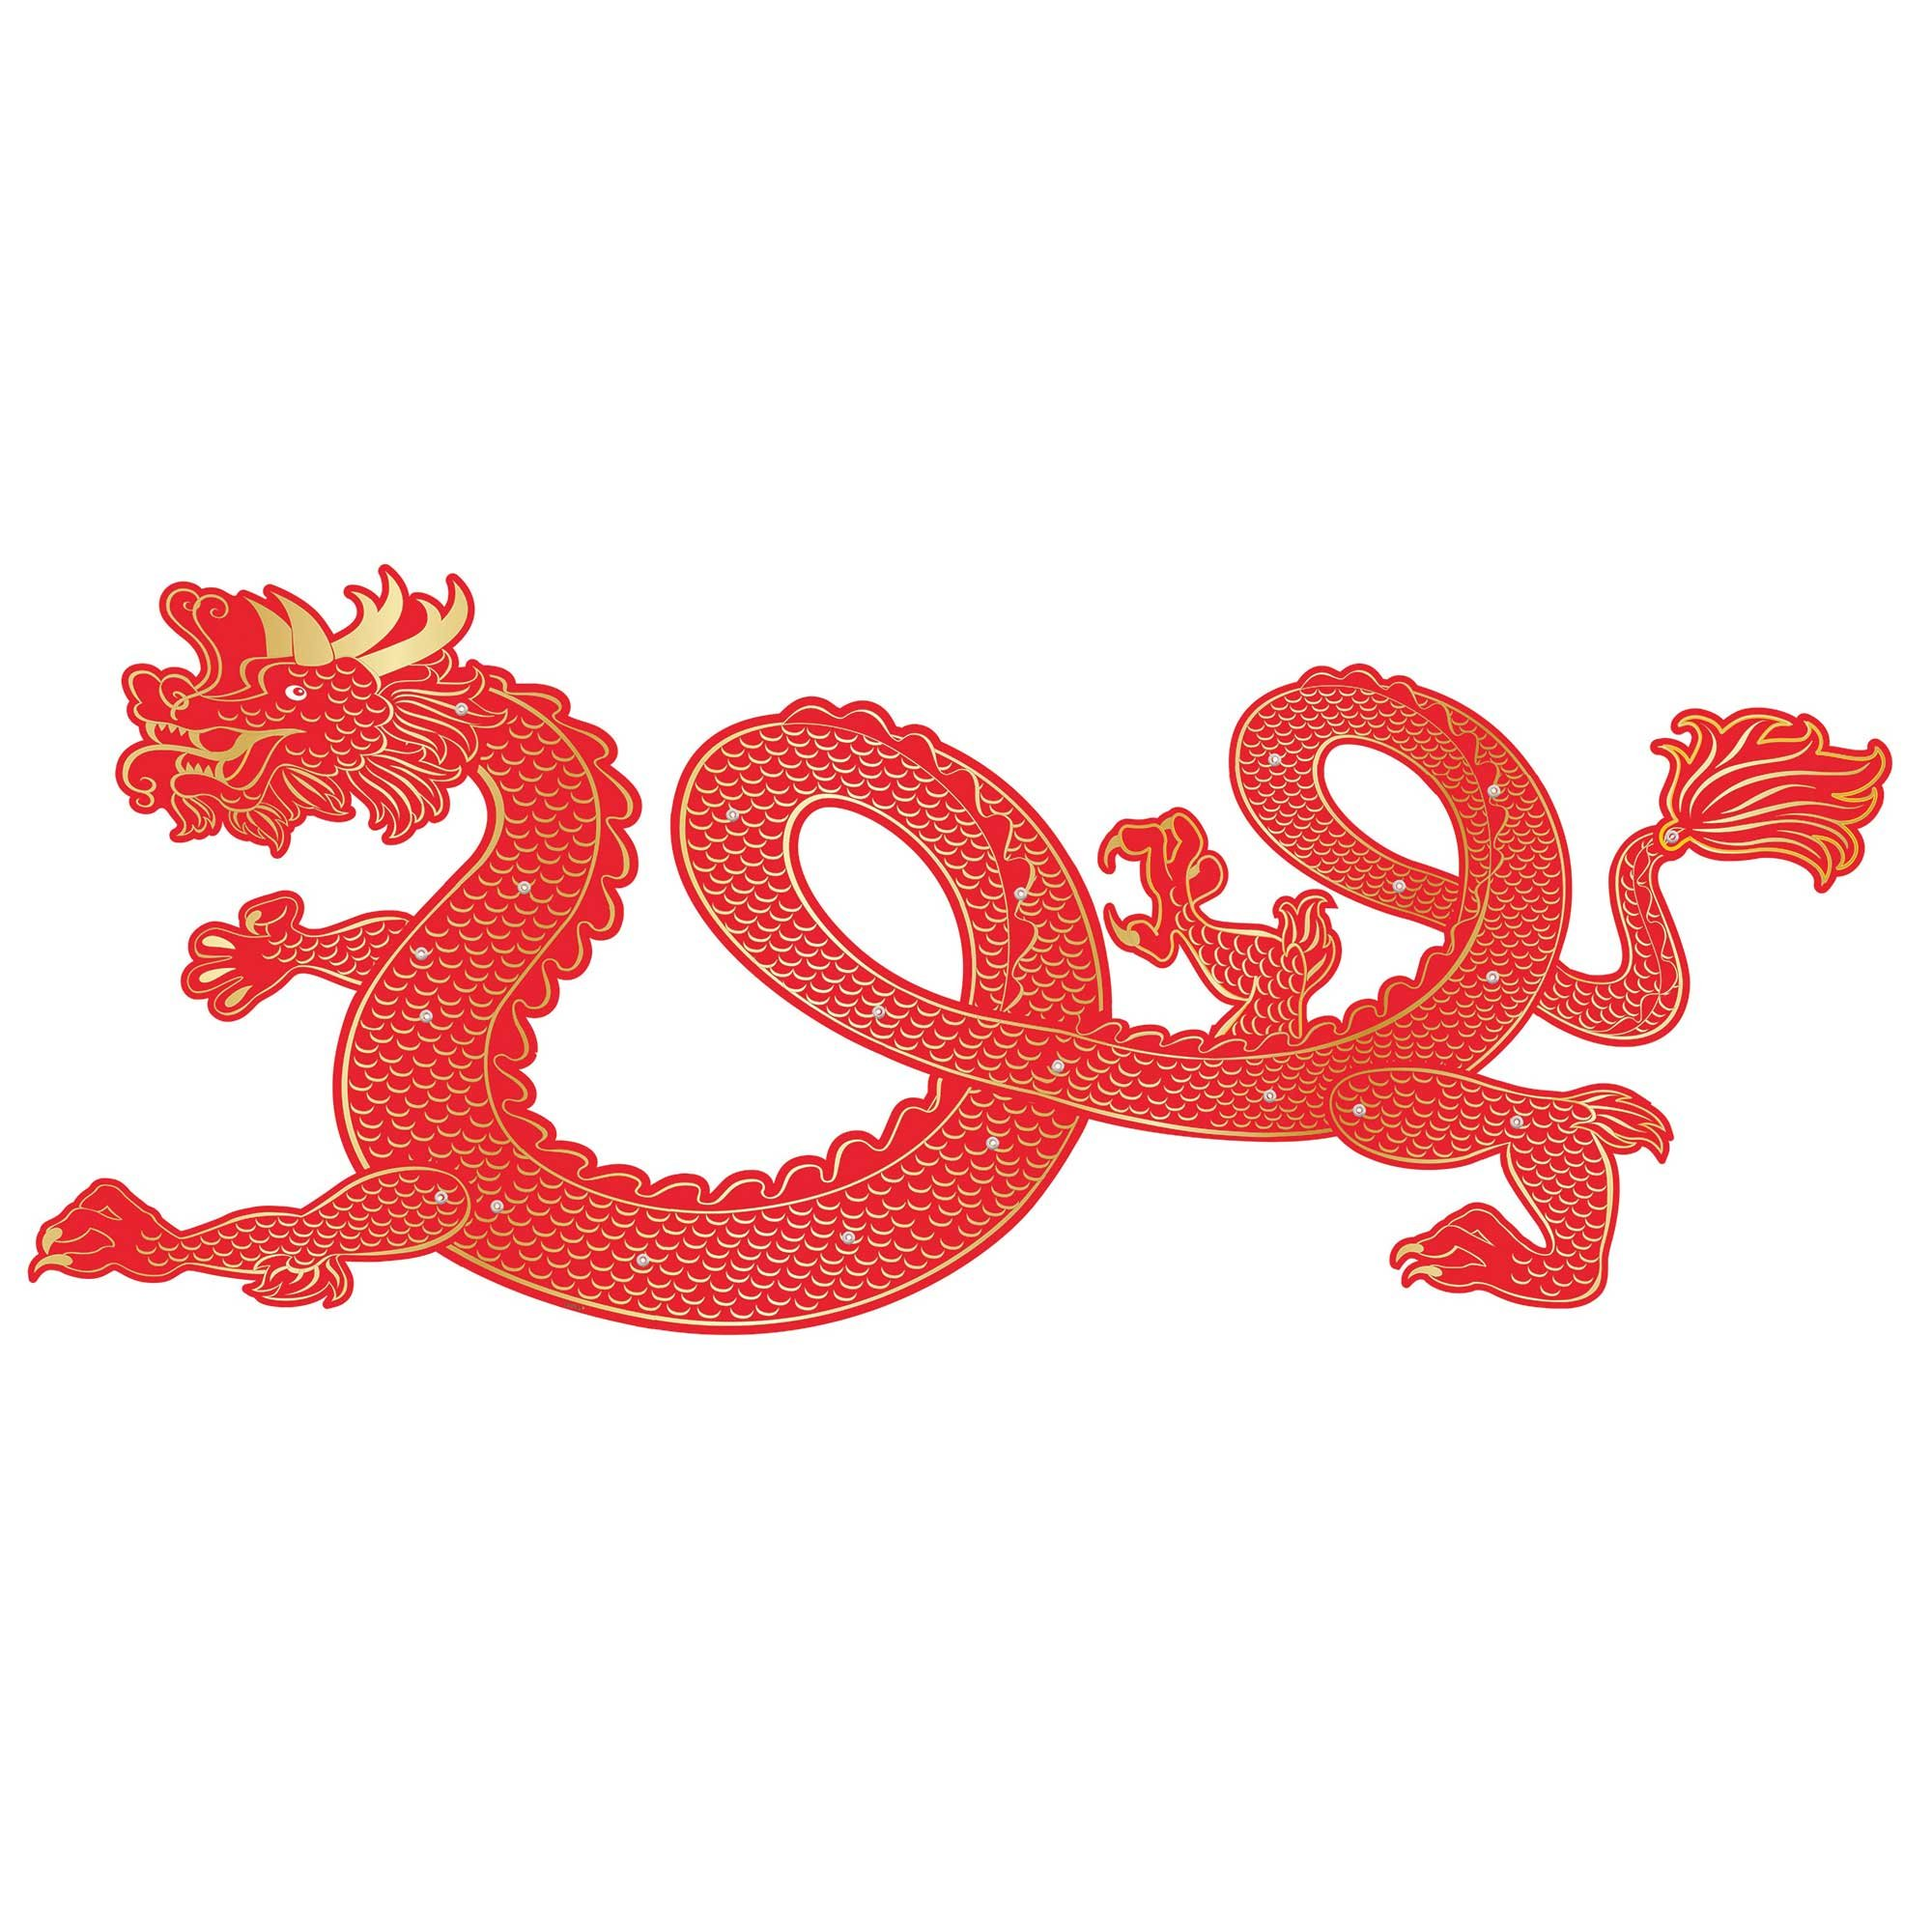 Chinese New Year Dragon Jointed Cut Out Foil Hot Stamped